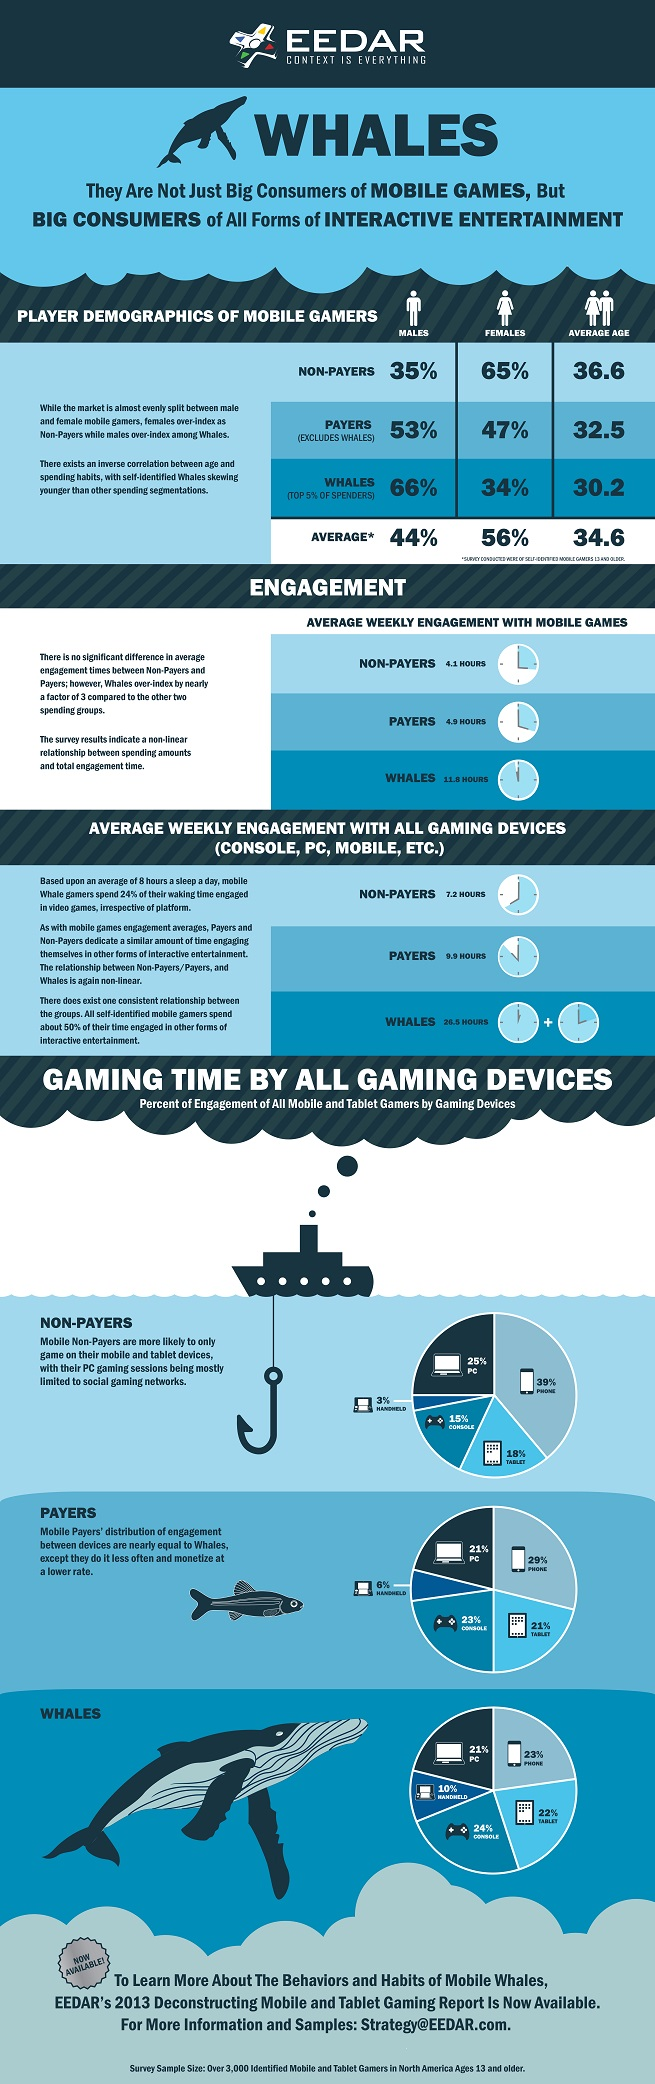 EEDAR mobile gaming infographic